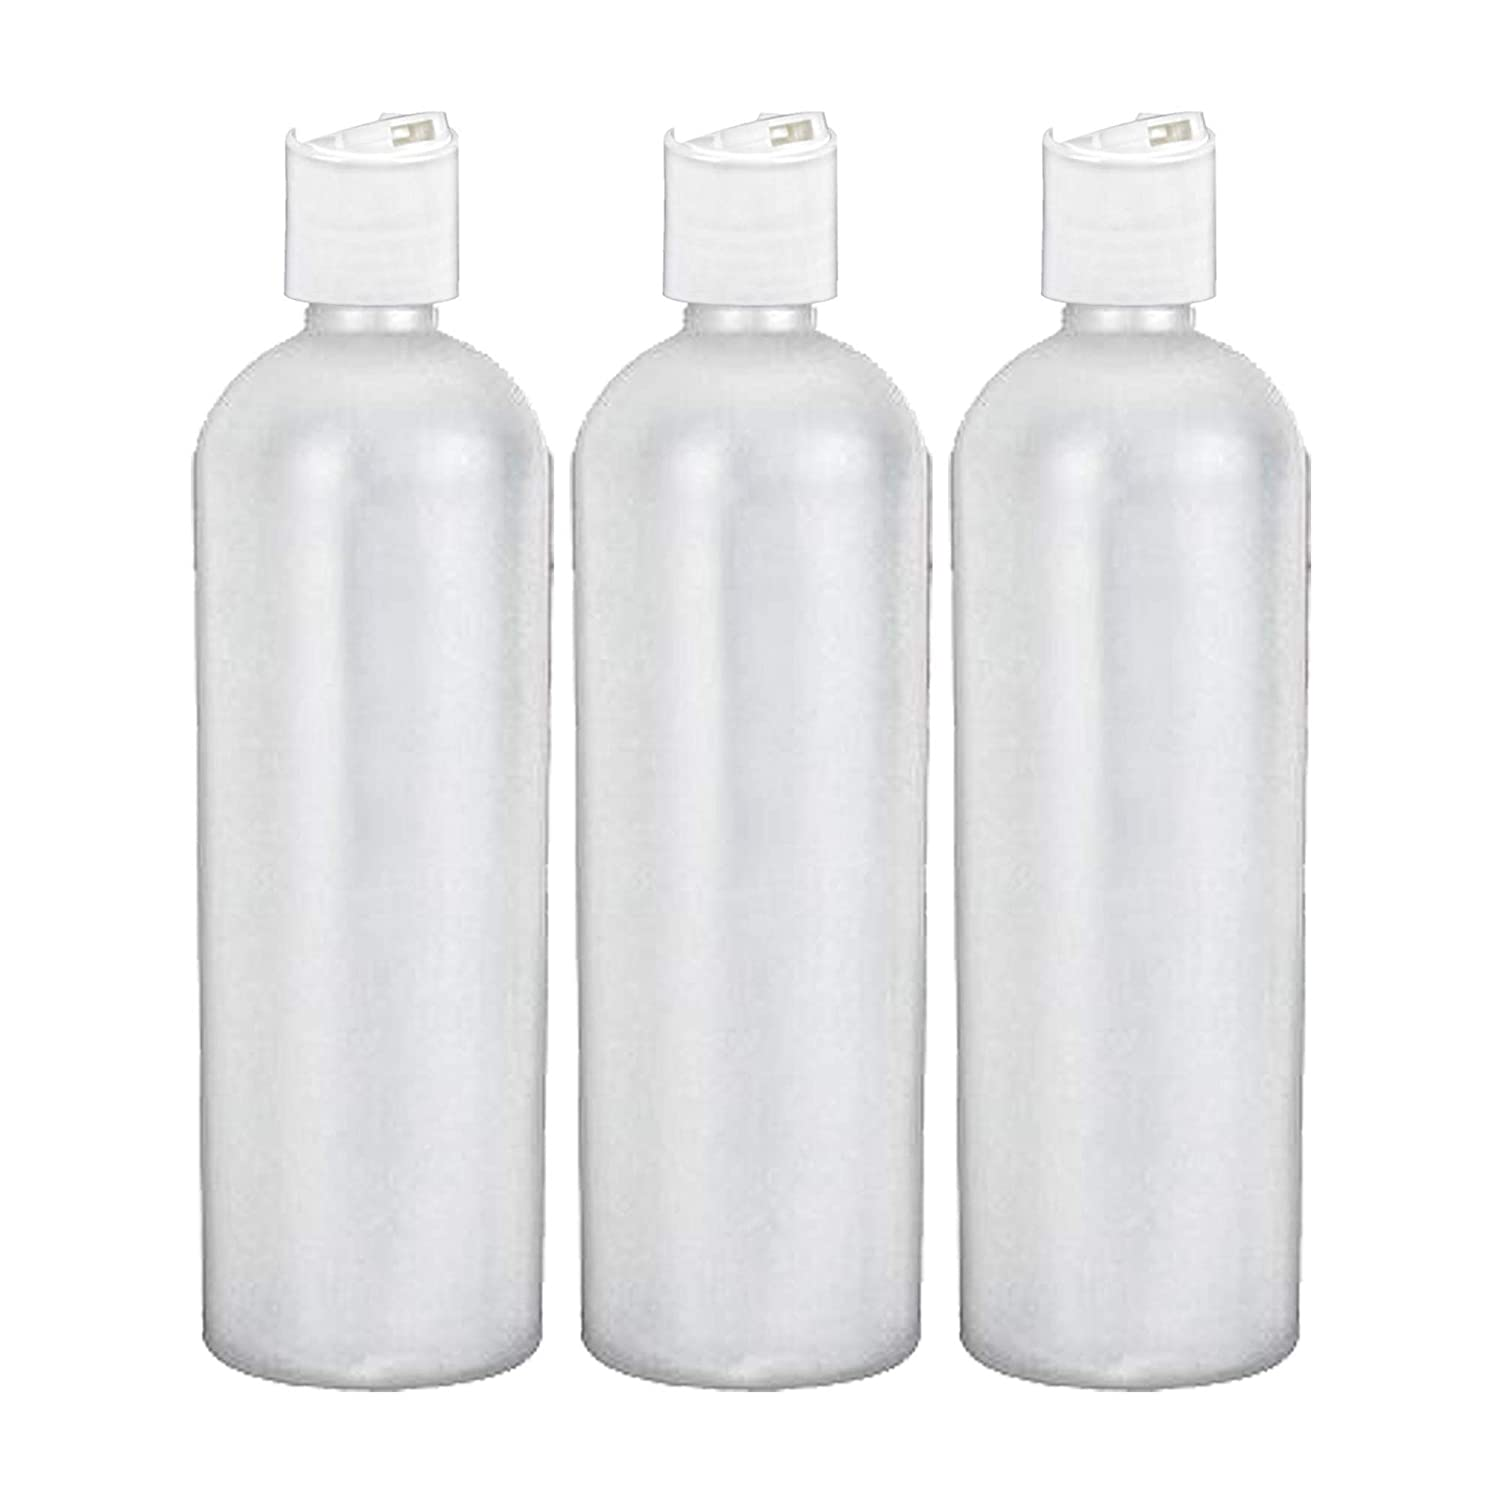 MoYo Natural Labs 16 oz Travel Containers, Empty Shampoo Bottles with Disc  Tops, BPA Free HDPE